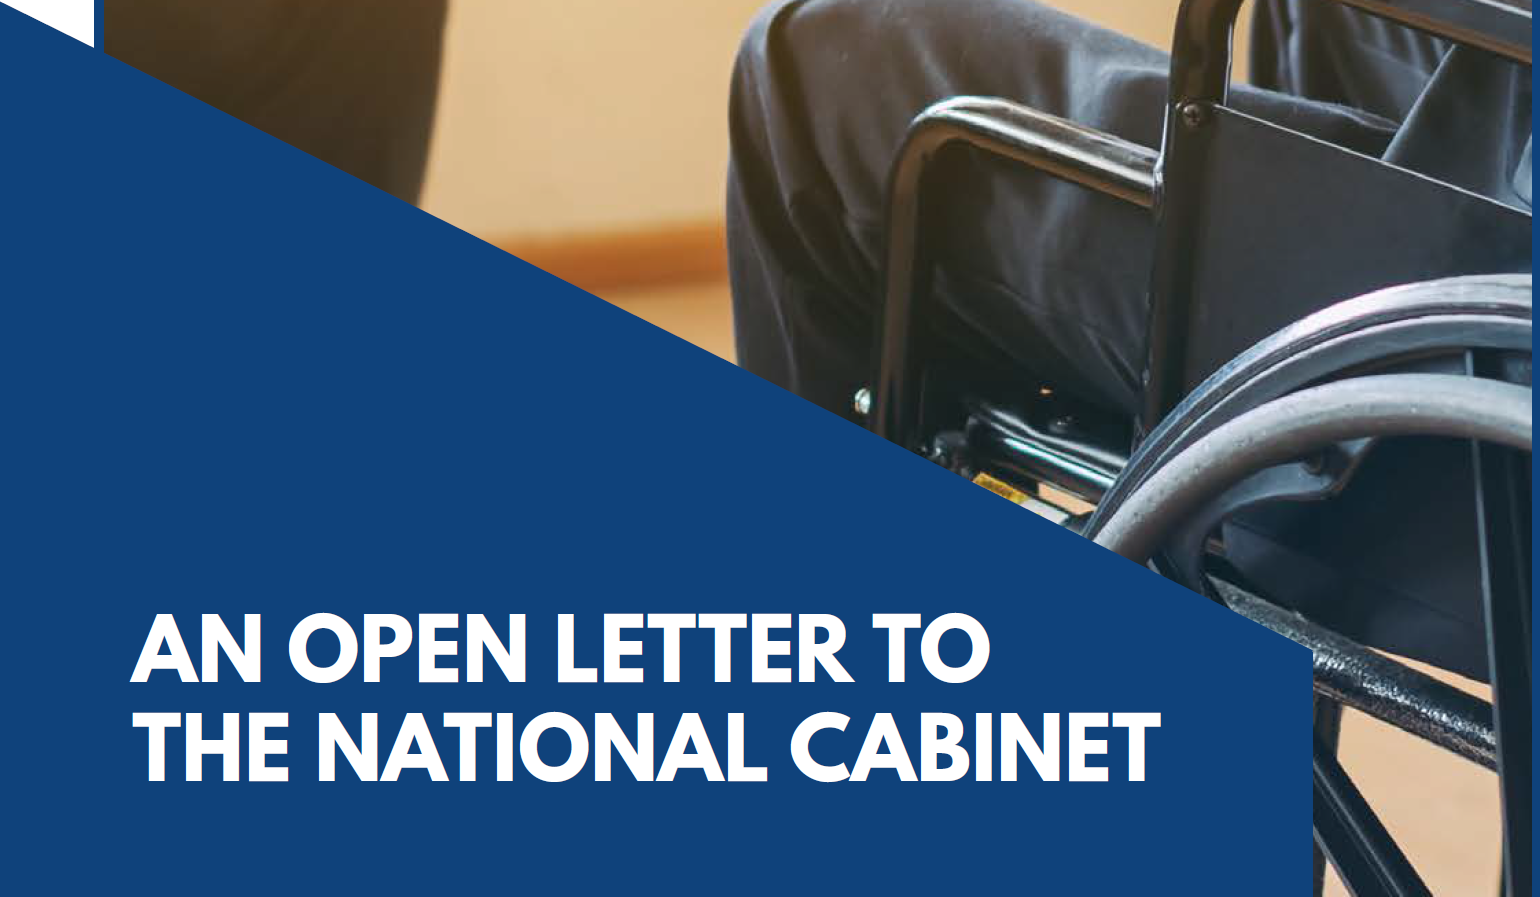 An Open Letter to the National Cabinet - image - background is a wheelchair user sitting in an office meeting